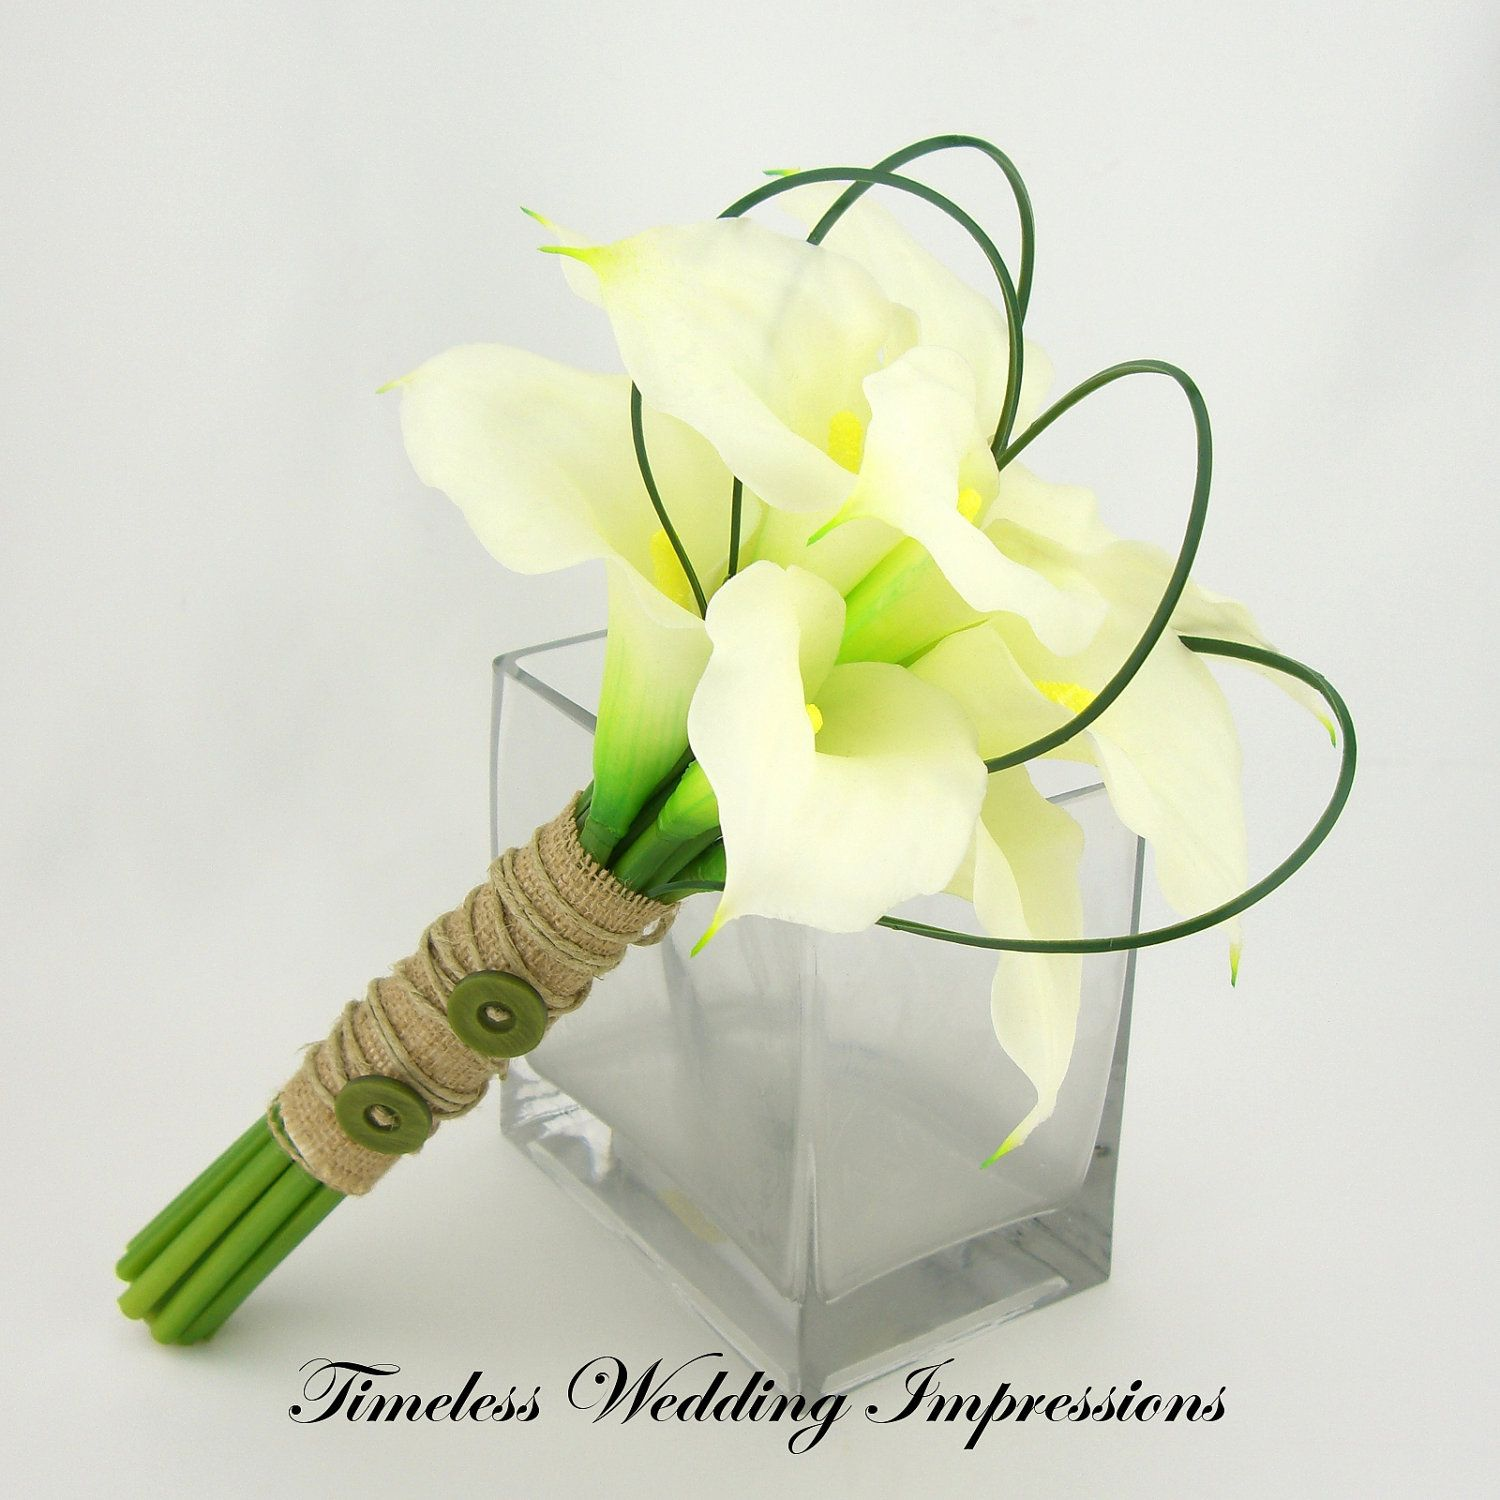 Calla Lily Wedding Bouquets Request A Custom Order And Have Something Mad Calla Lily Bridesmaid Bouquet Calla Lily Bouquet Wedding Calla Lily Wedding Flowers